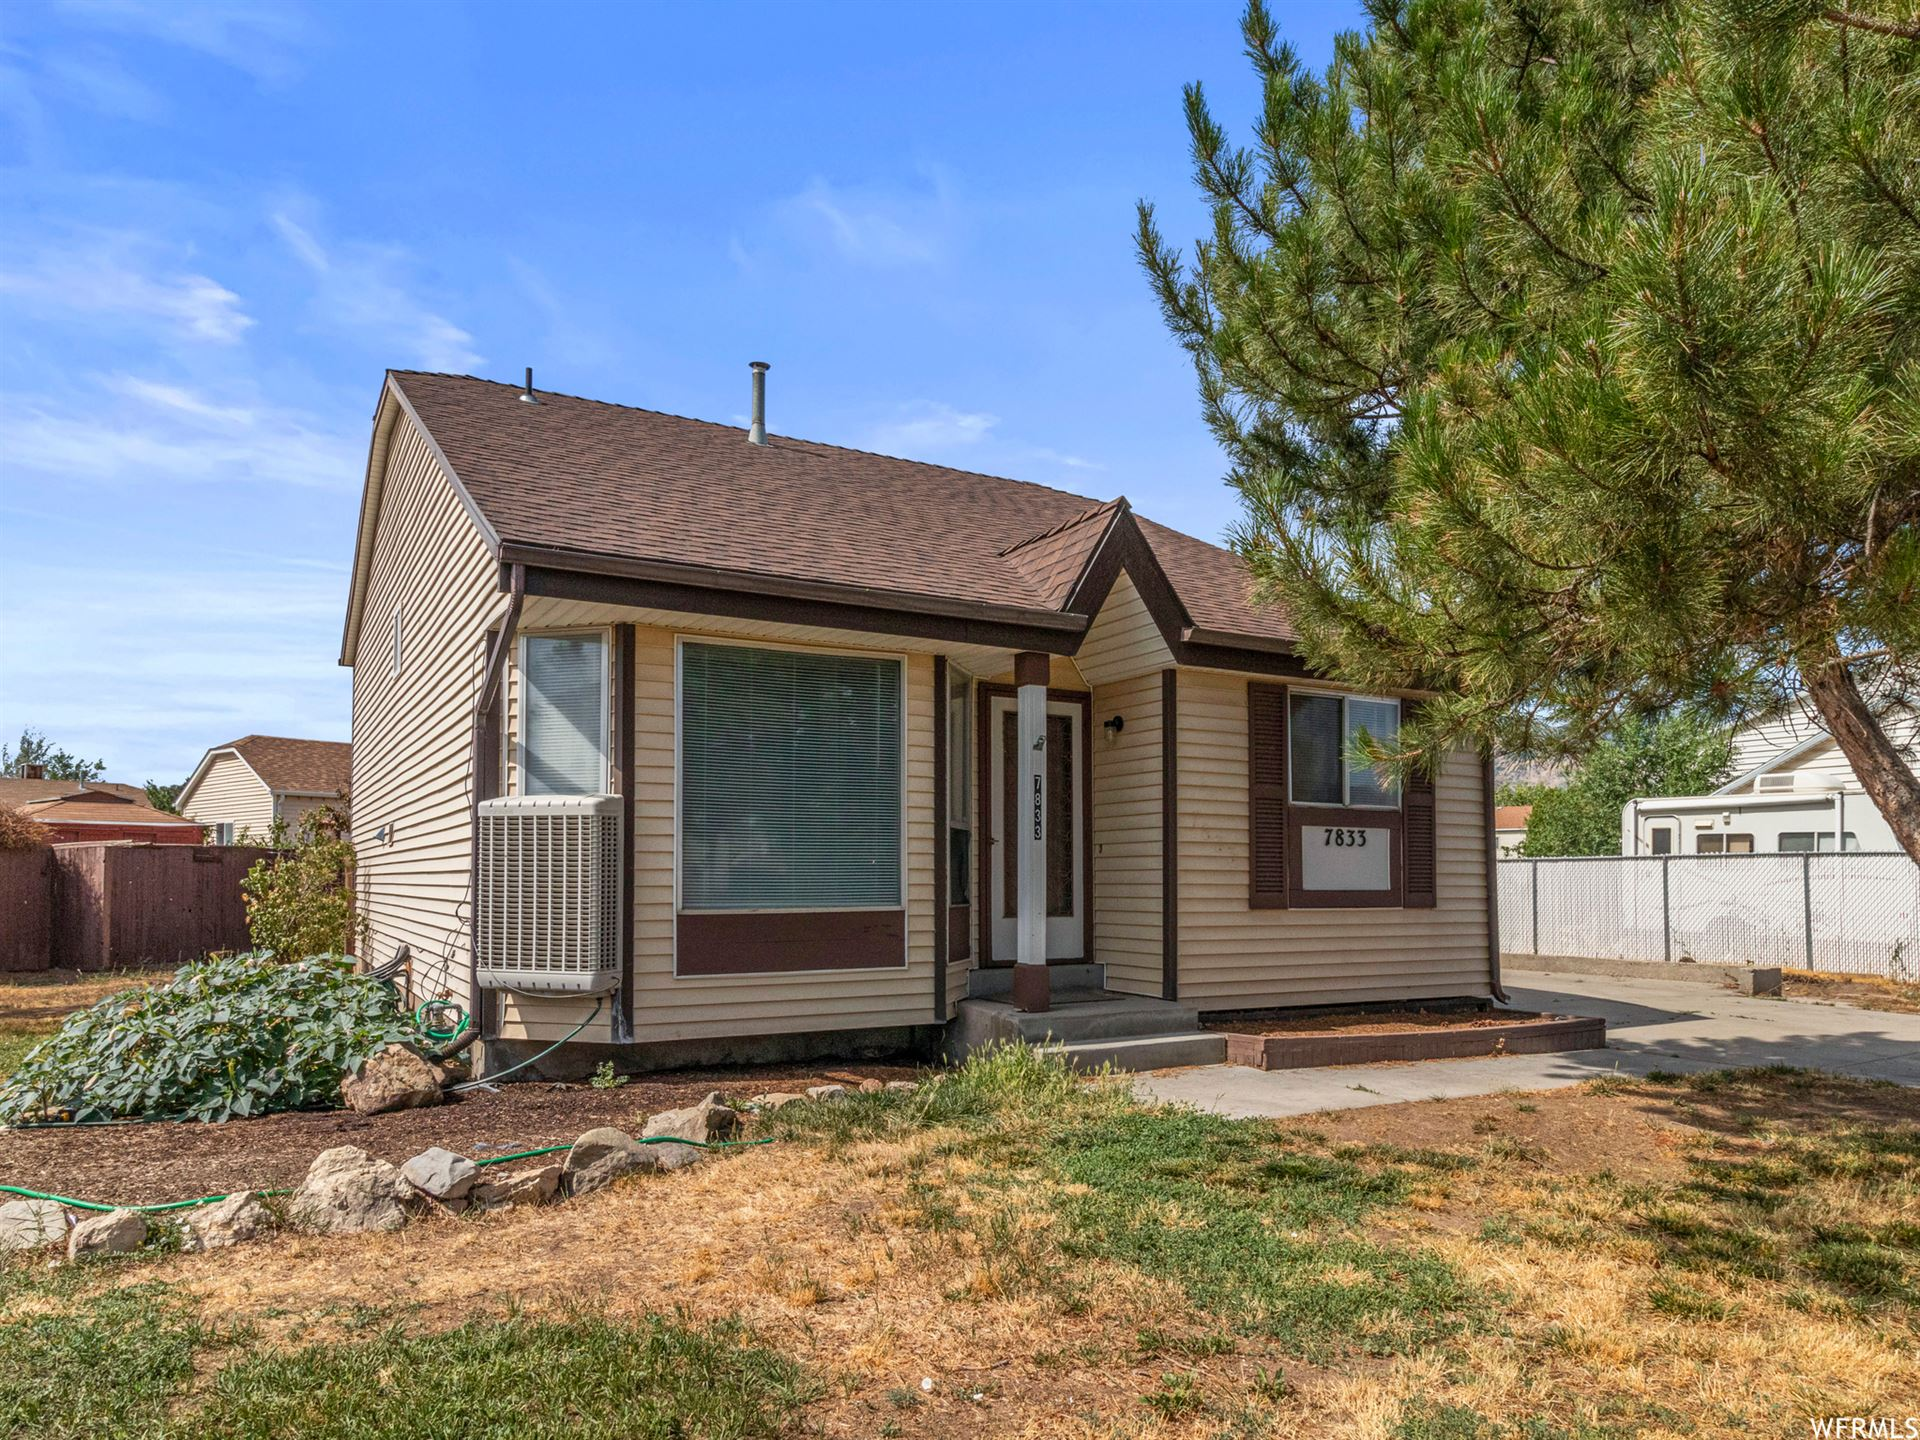 Photo of 7833 W DALESEND DR, Magna, UT 84044 (MLS # 1757421)